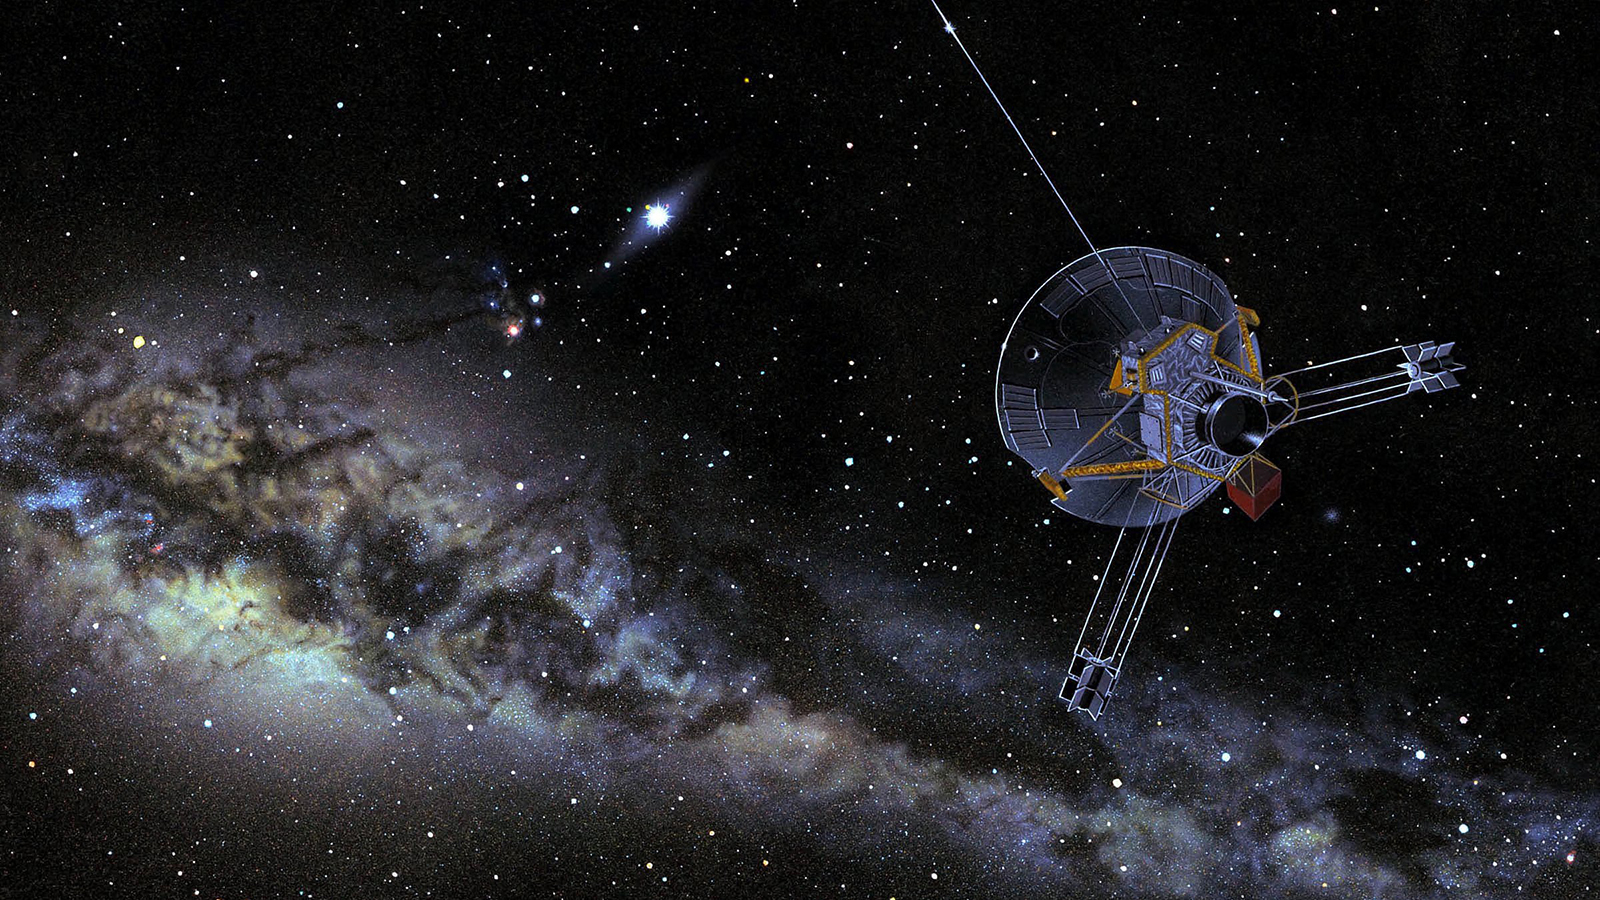 Pioneer Spacecraft with Milky Way in background.